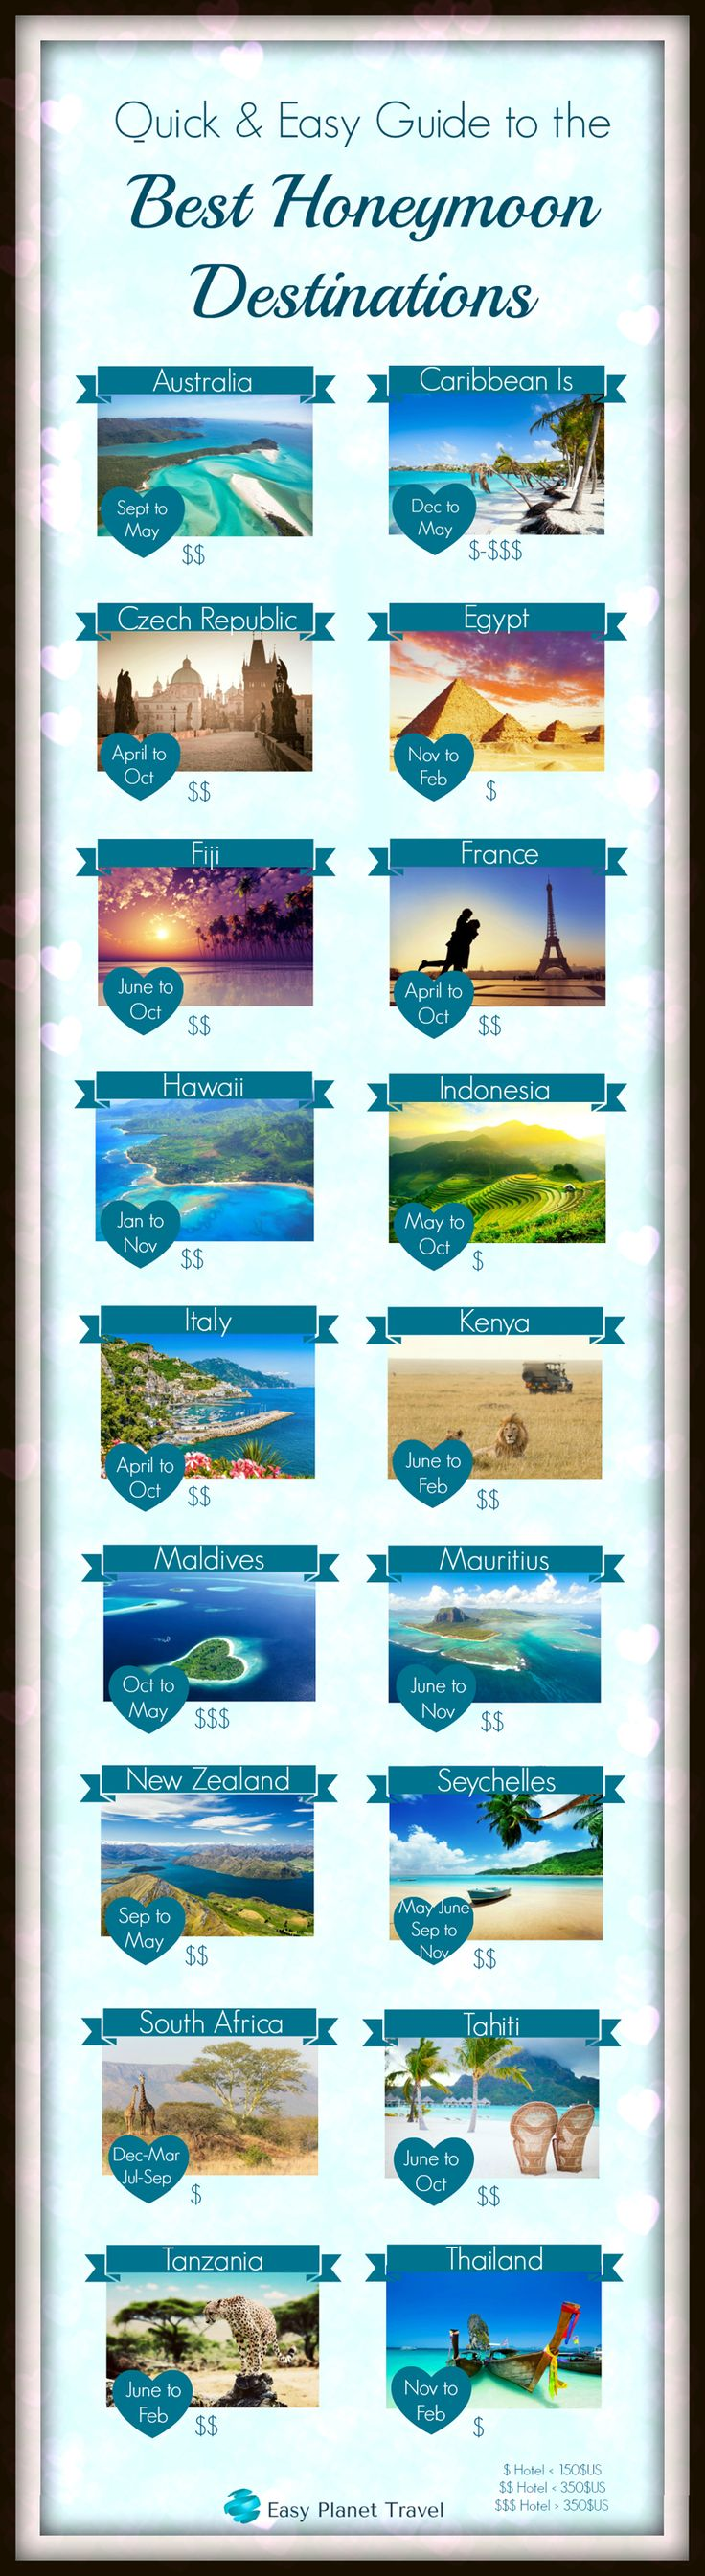 Quick and easy guide to the best Honeymoon destinations | Easy Planet Travel - World travel made simple